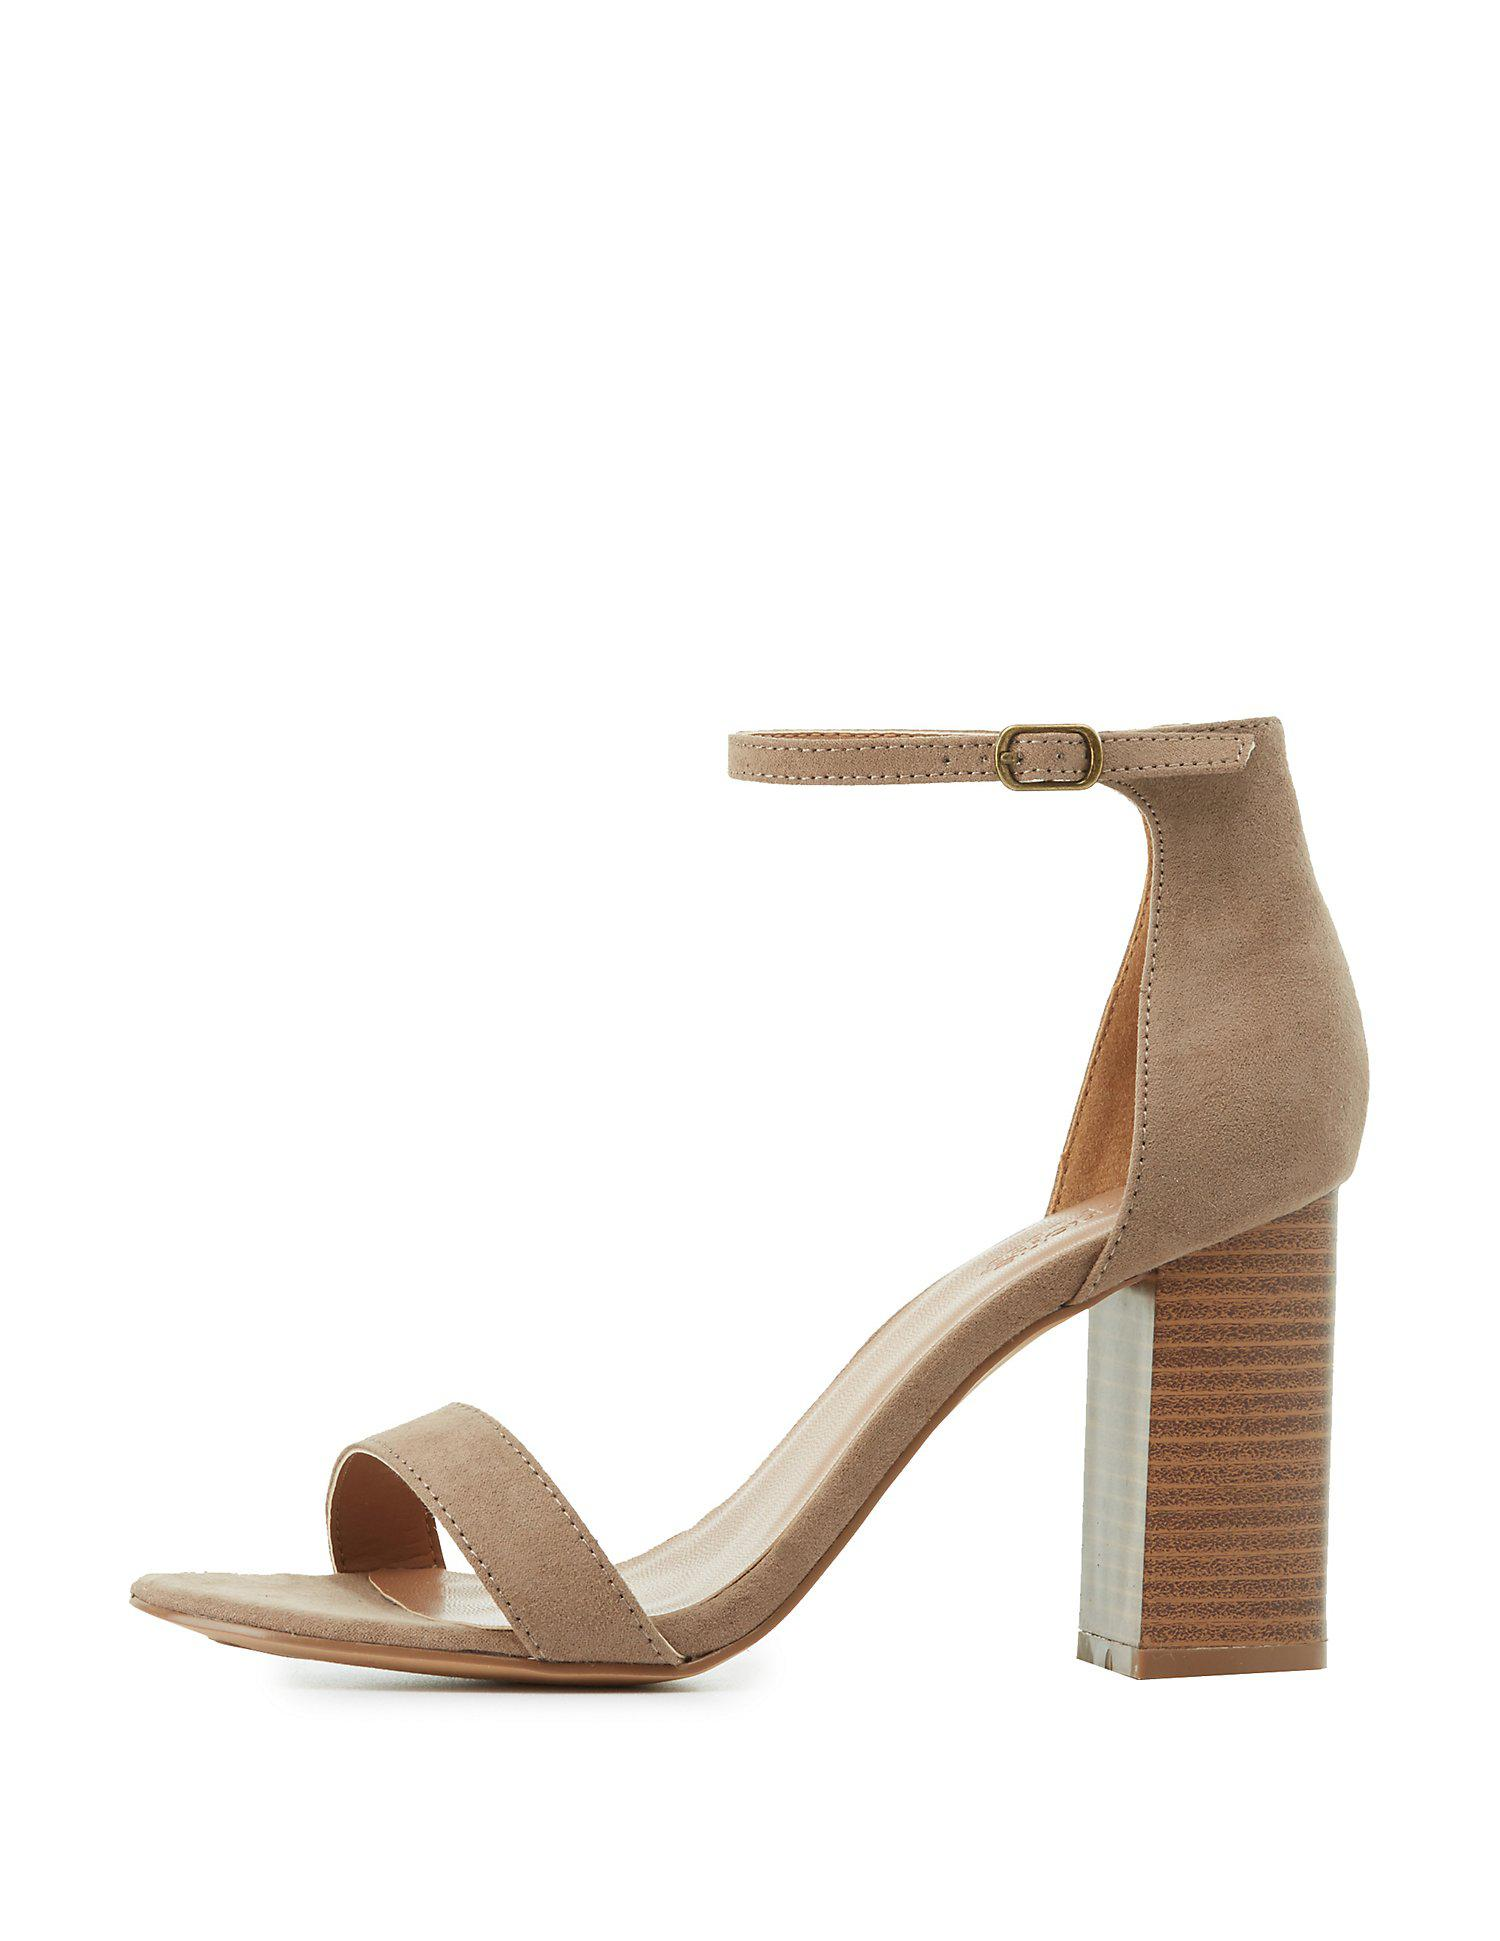 91c82cd117cd Charlotte Russe - Multicolor Two-piece Chunky Heel Sandals - Lyst